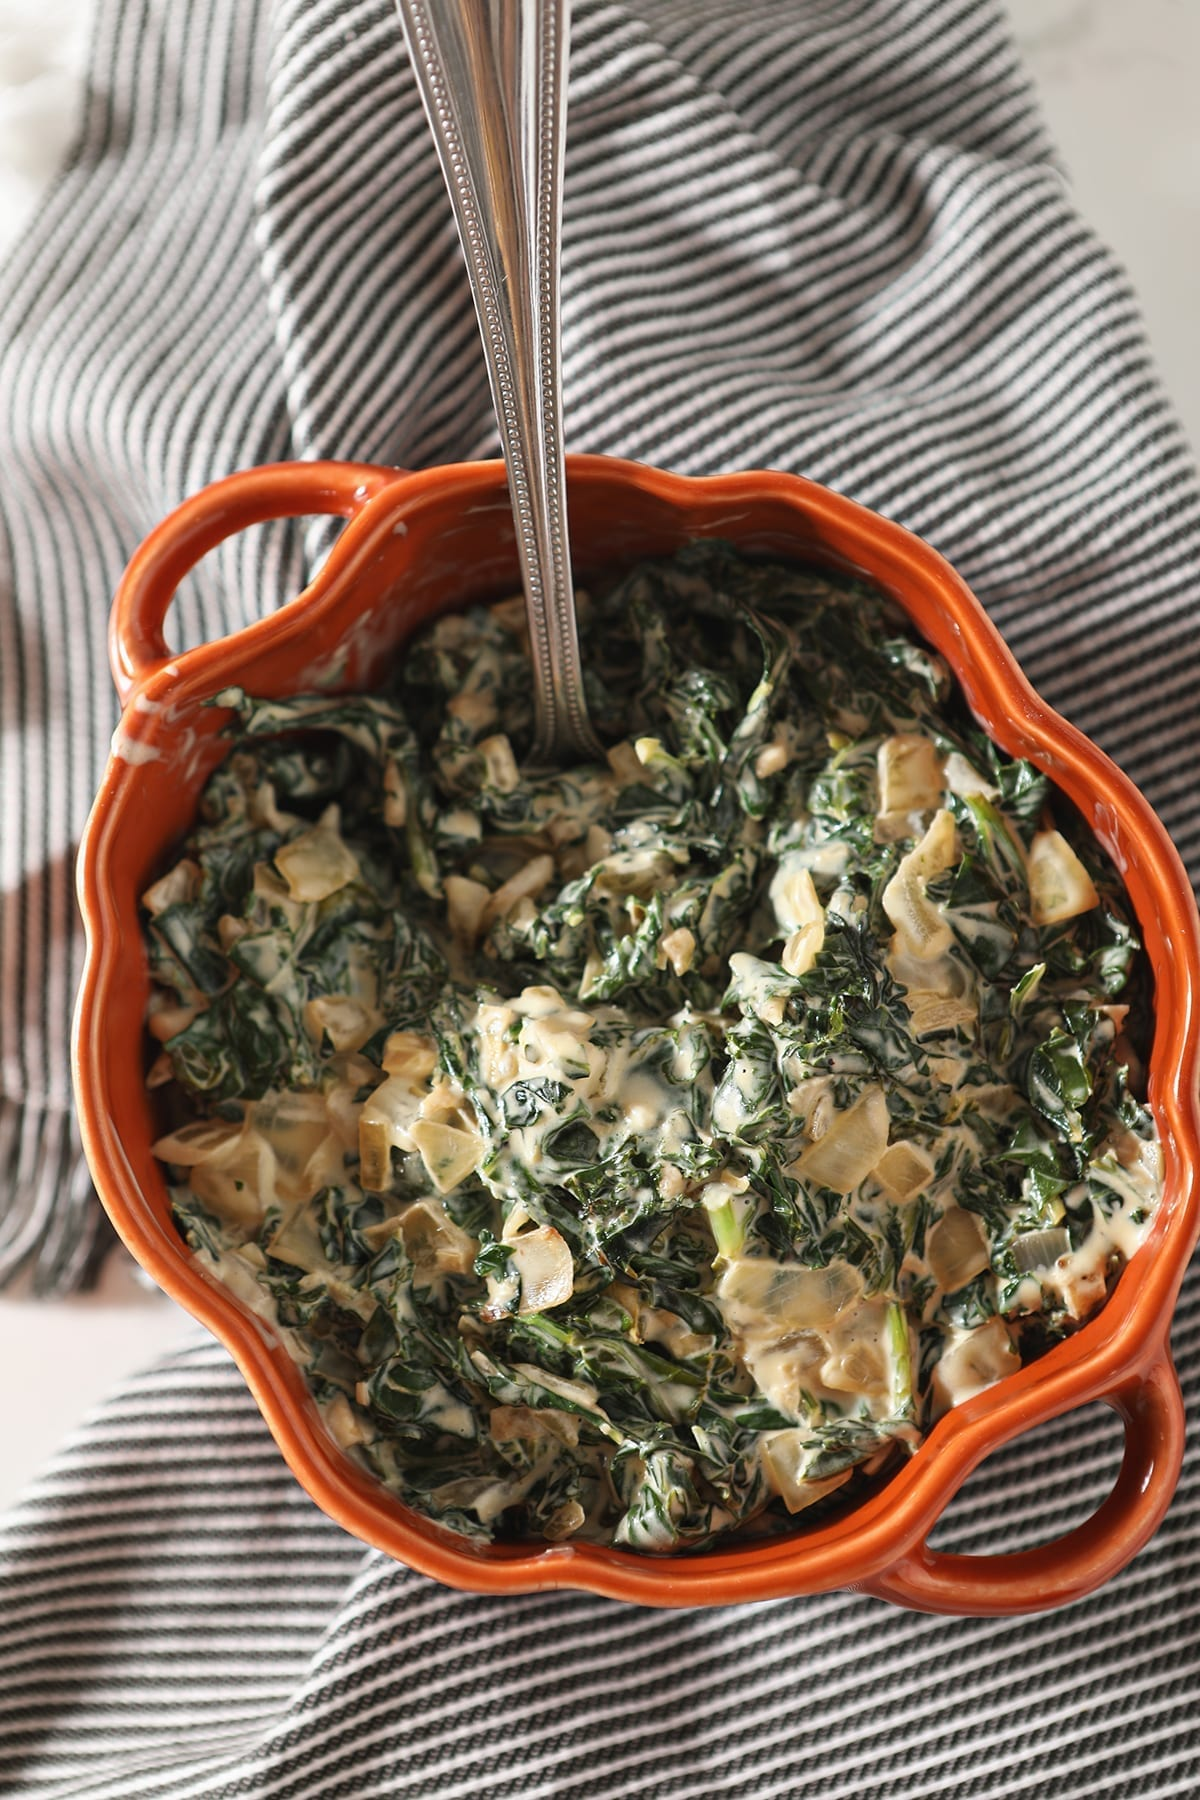 A silver spoon sits in an orange dish of Creamy Kale sitting on a gray striped towel